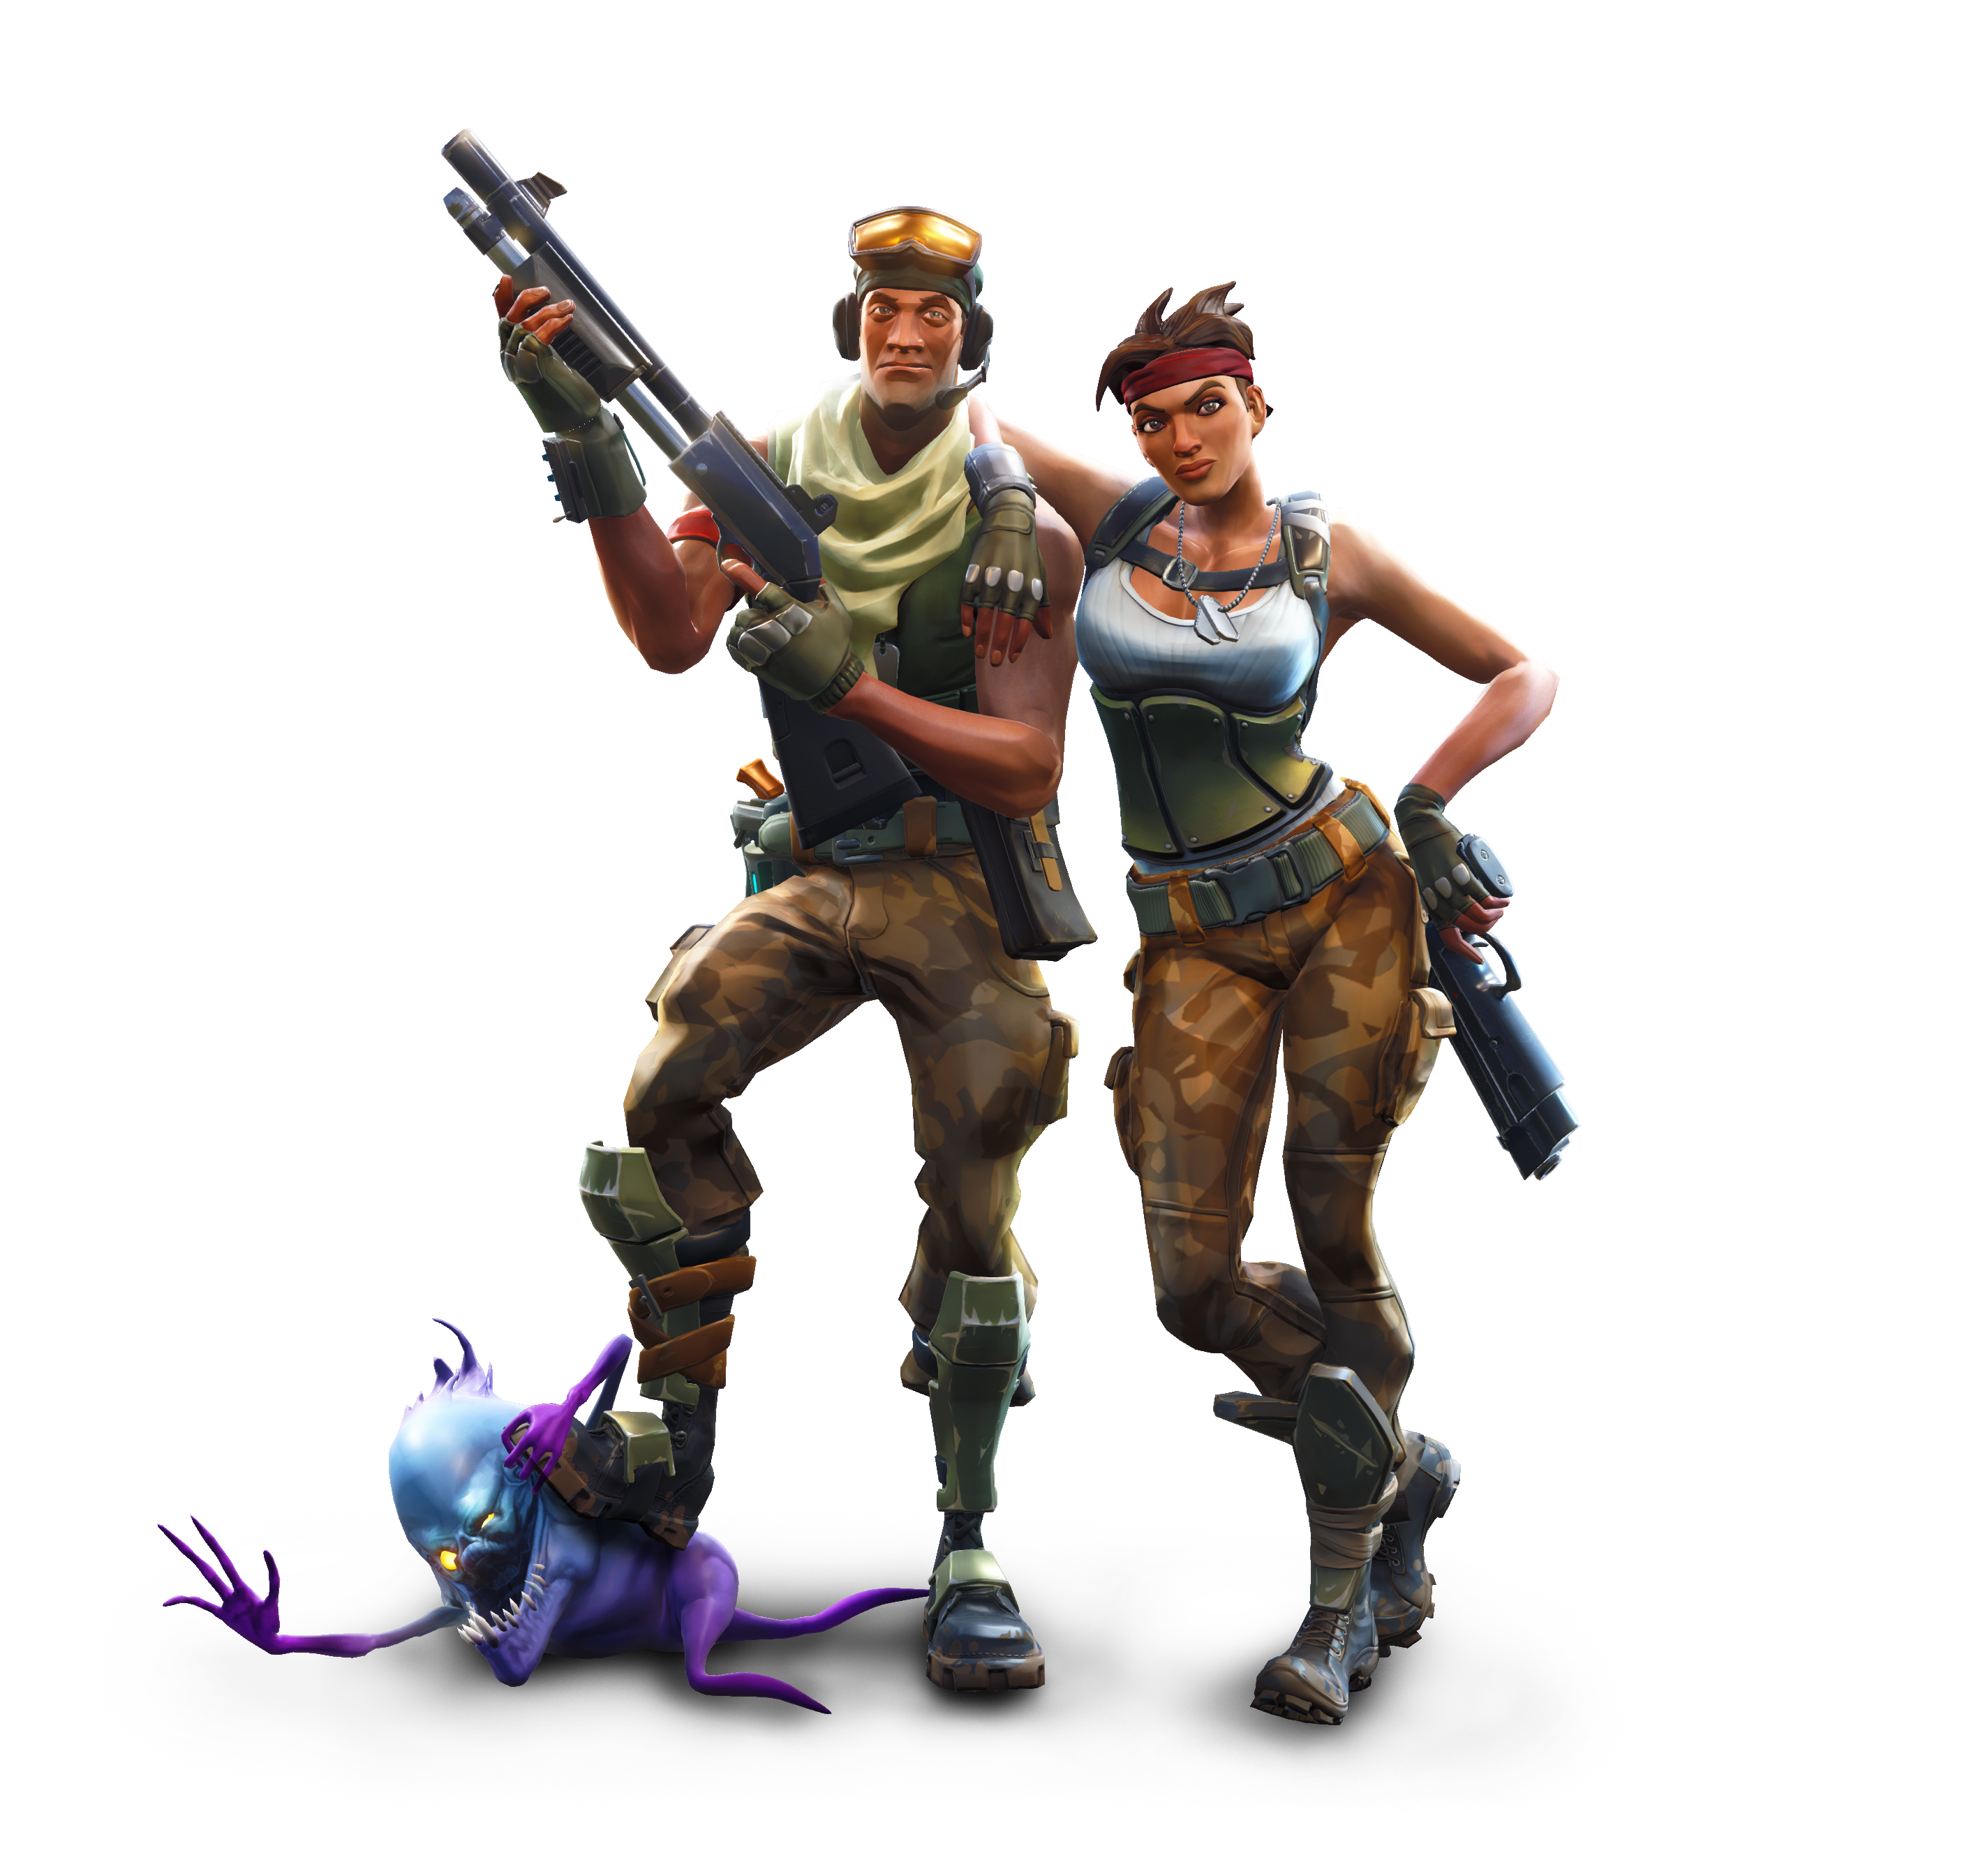 Fortnite Battle Royale Champs PNG Image.